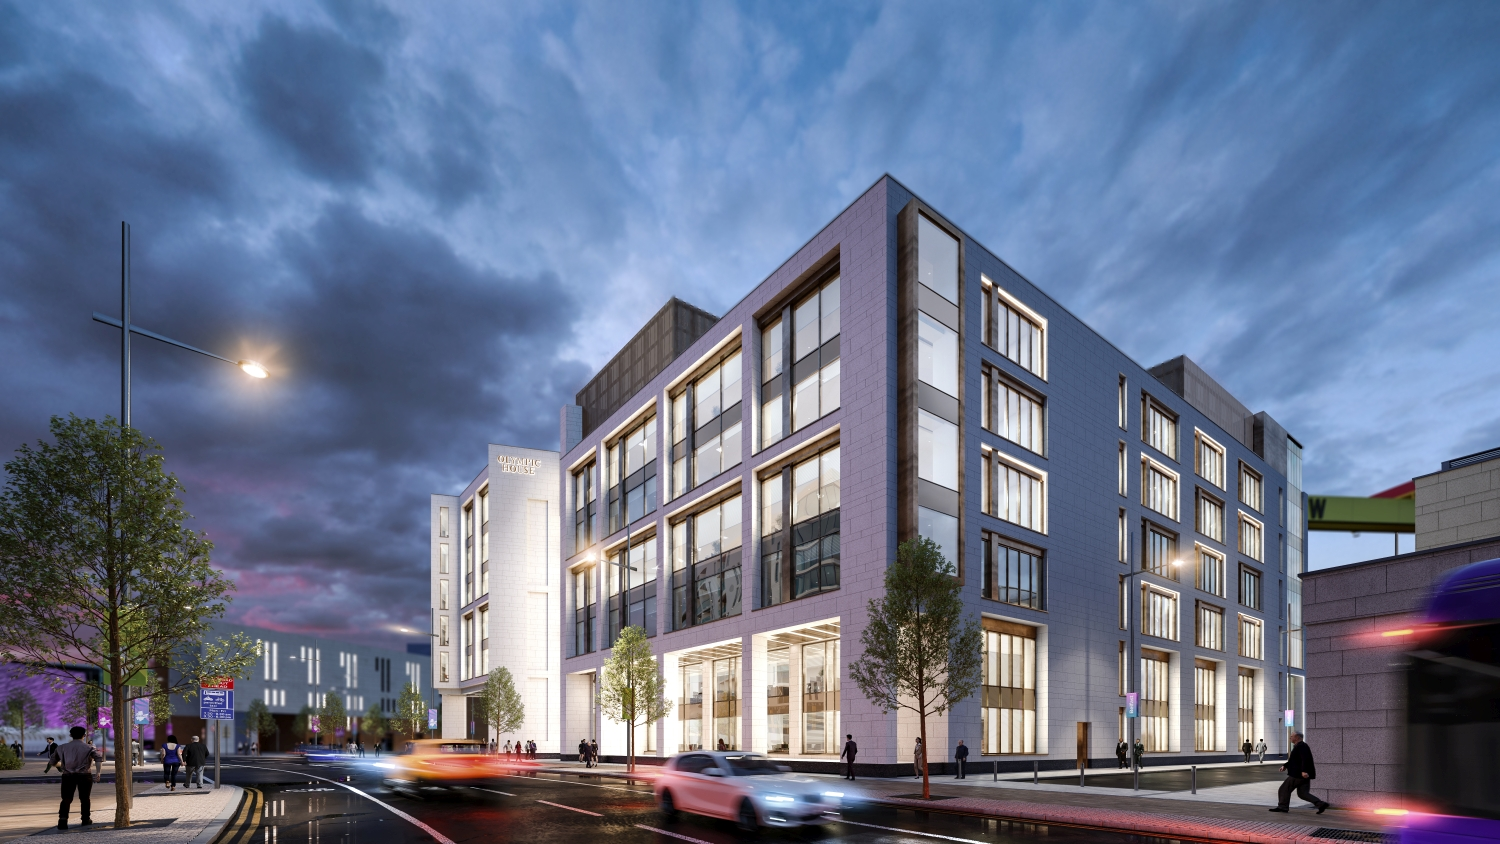 The Olympic House - £30m development, will comprise two linked blocks of six and seven storeys in total of 150,000 sq ft of Grade A office space including a feature atrium. The development also includes a basement car park.